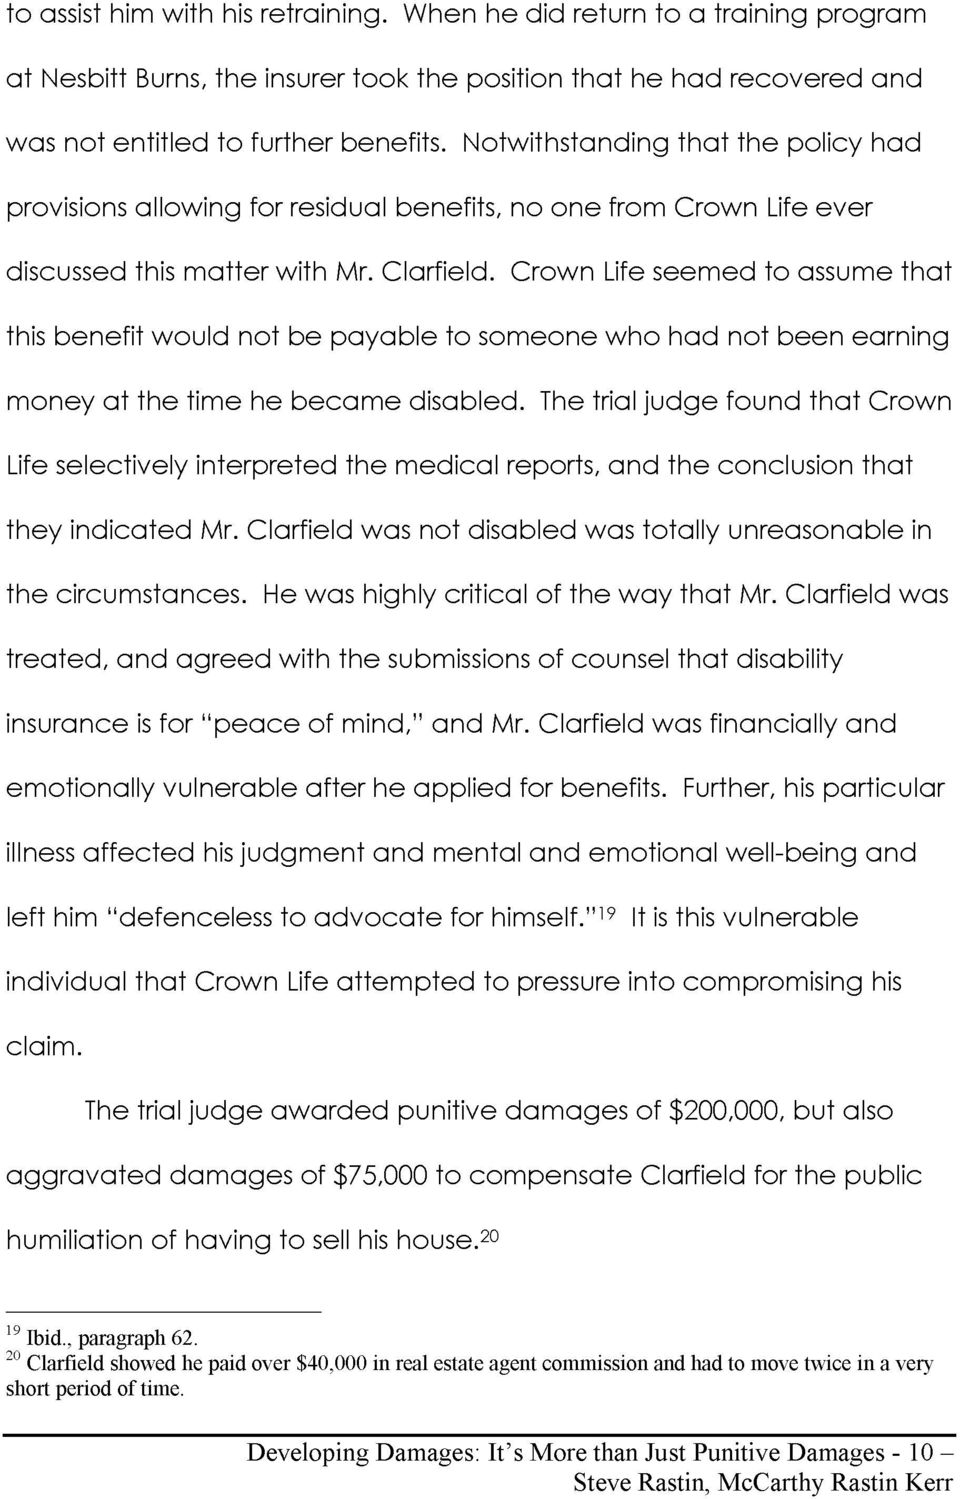 not be payable to someone who had not been earning money at the time he became disabled The trial judge found that Crown Life selectively interpreted the medical reports and the conclusion that they